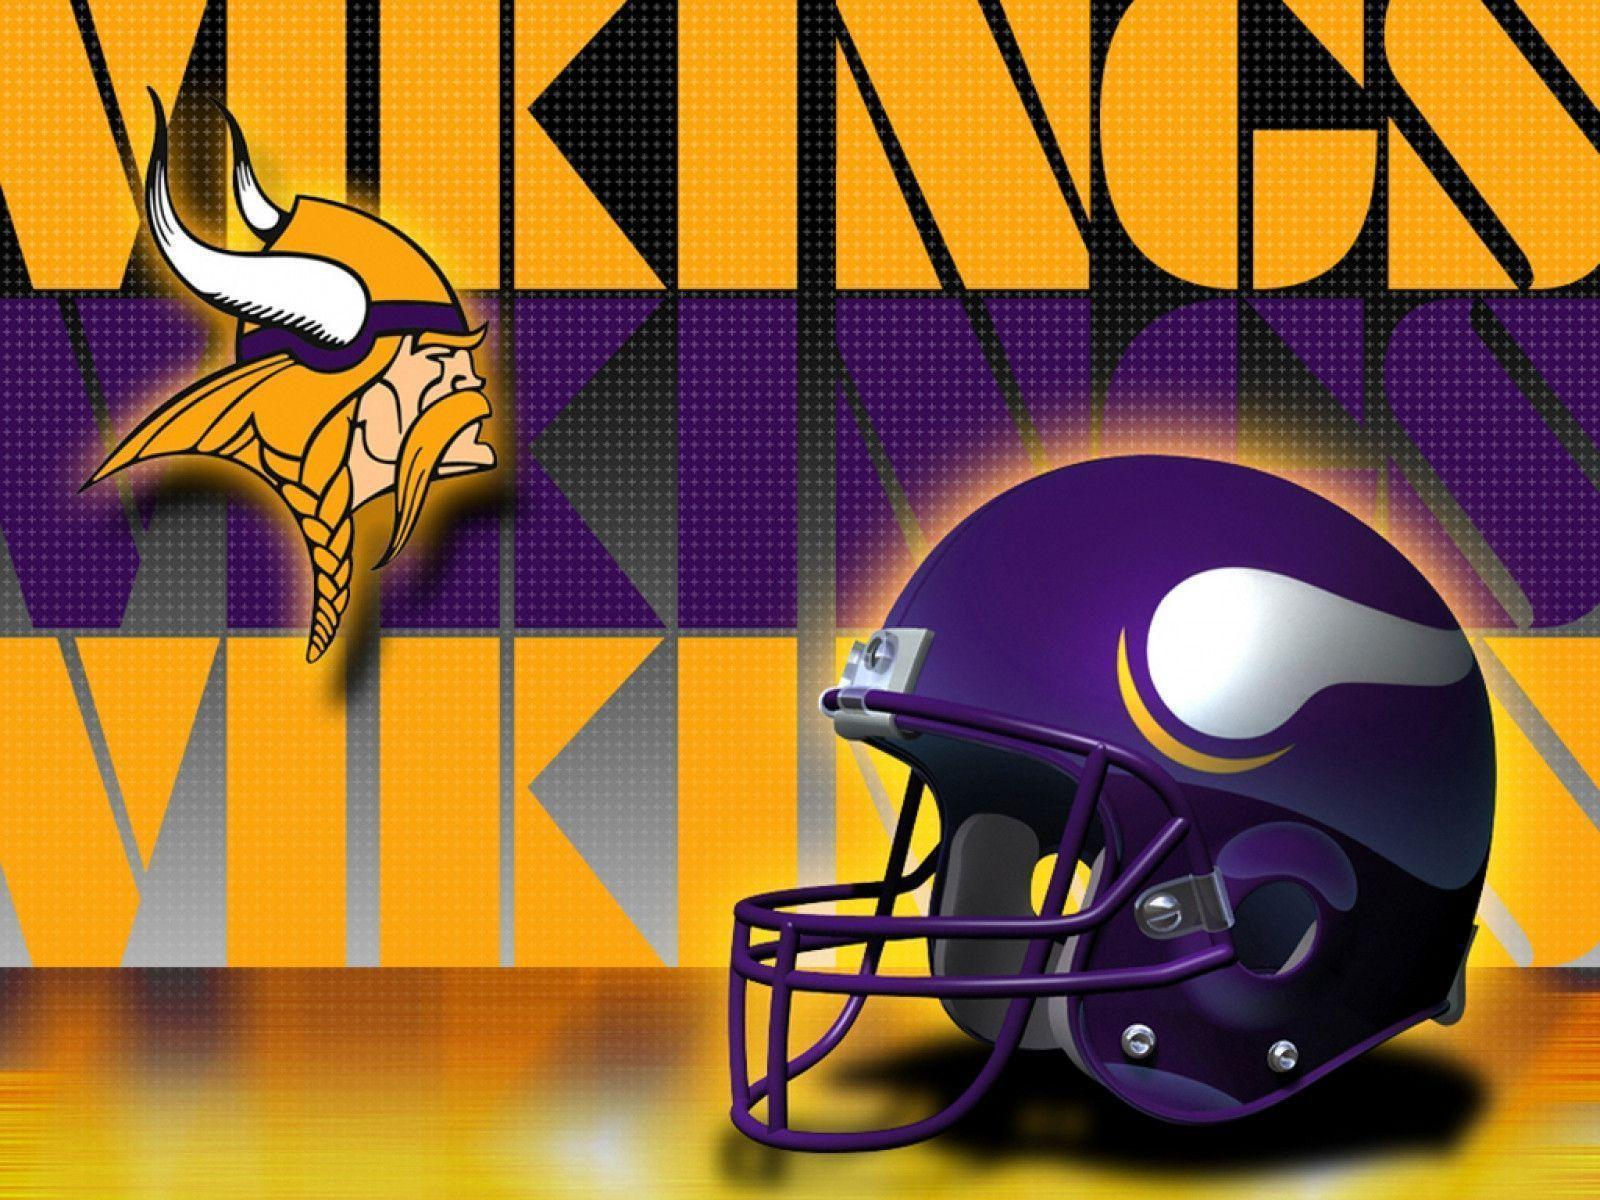 Vikings Logo Wallpapers - Wallpaper Cave